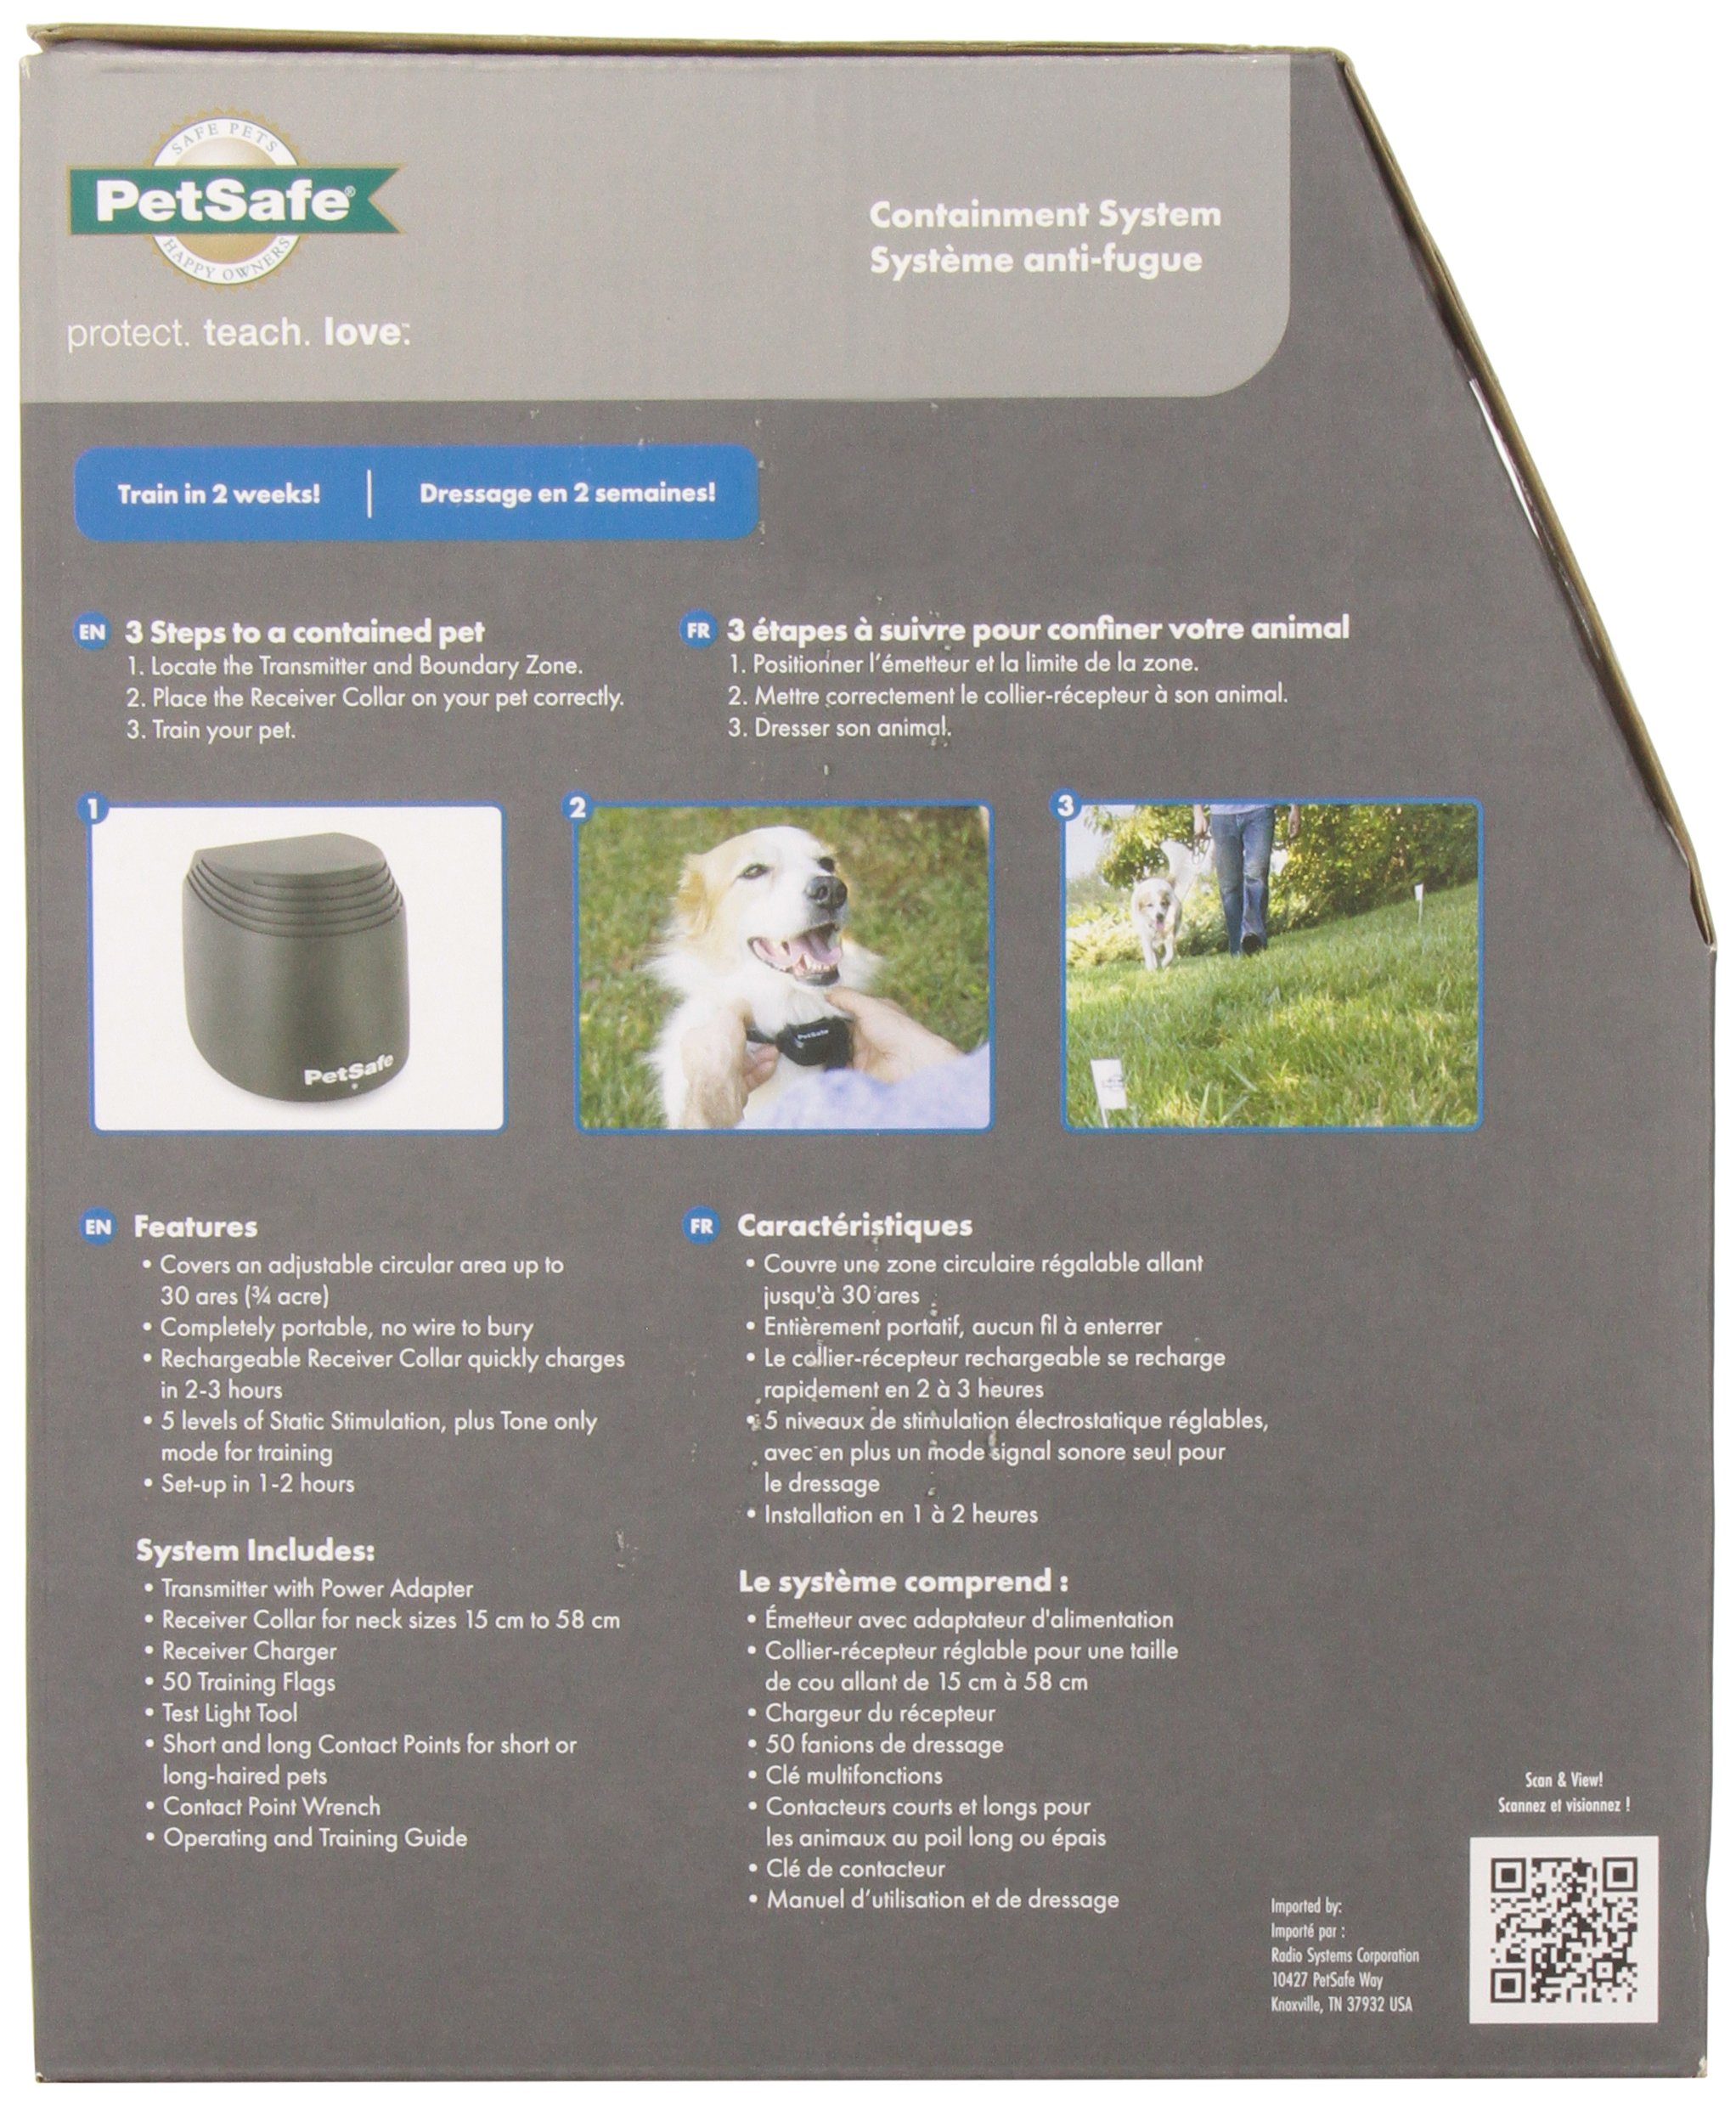 Petsafe PIF17-13478 Stay & Play Wireless Fence Dog Pet Containment Safety System